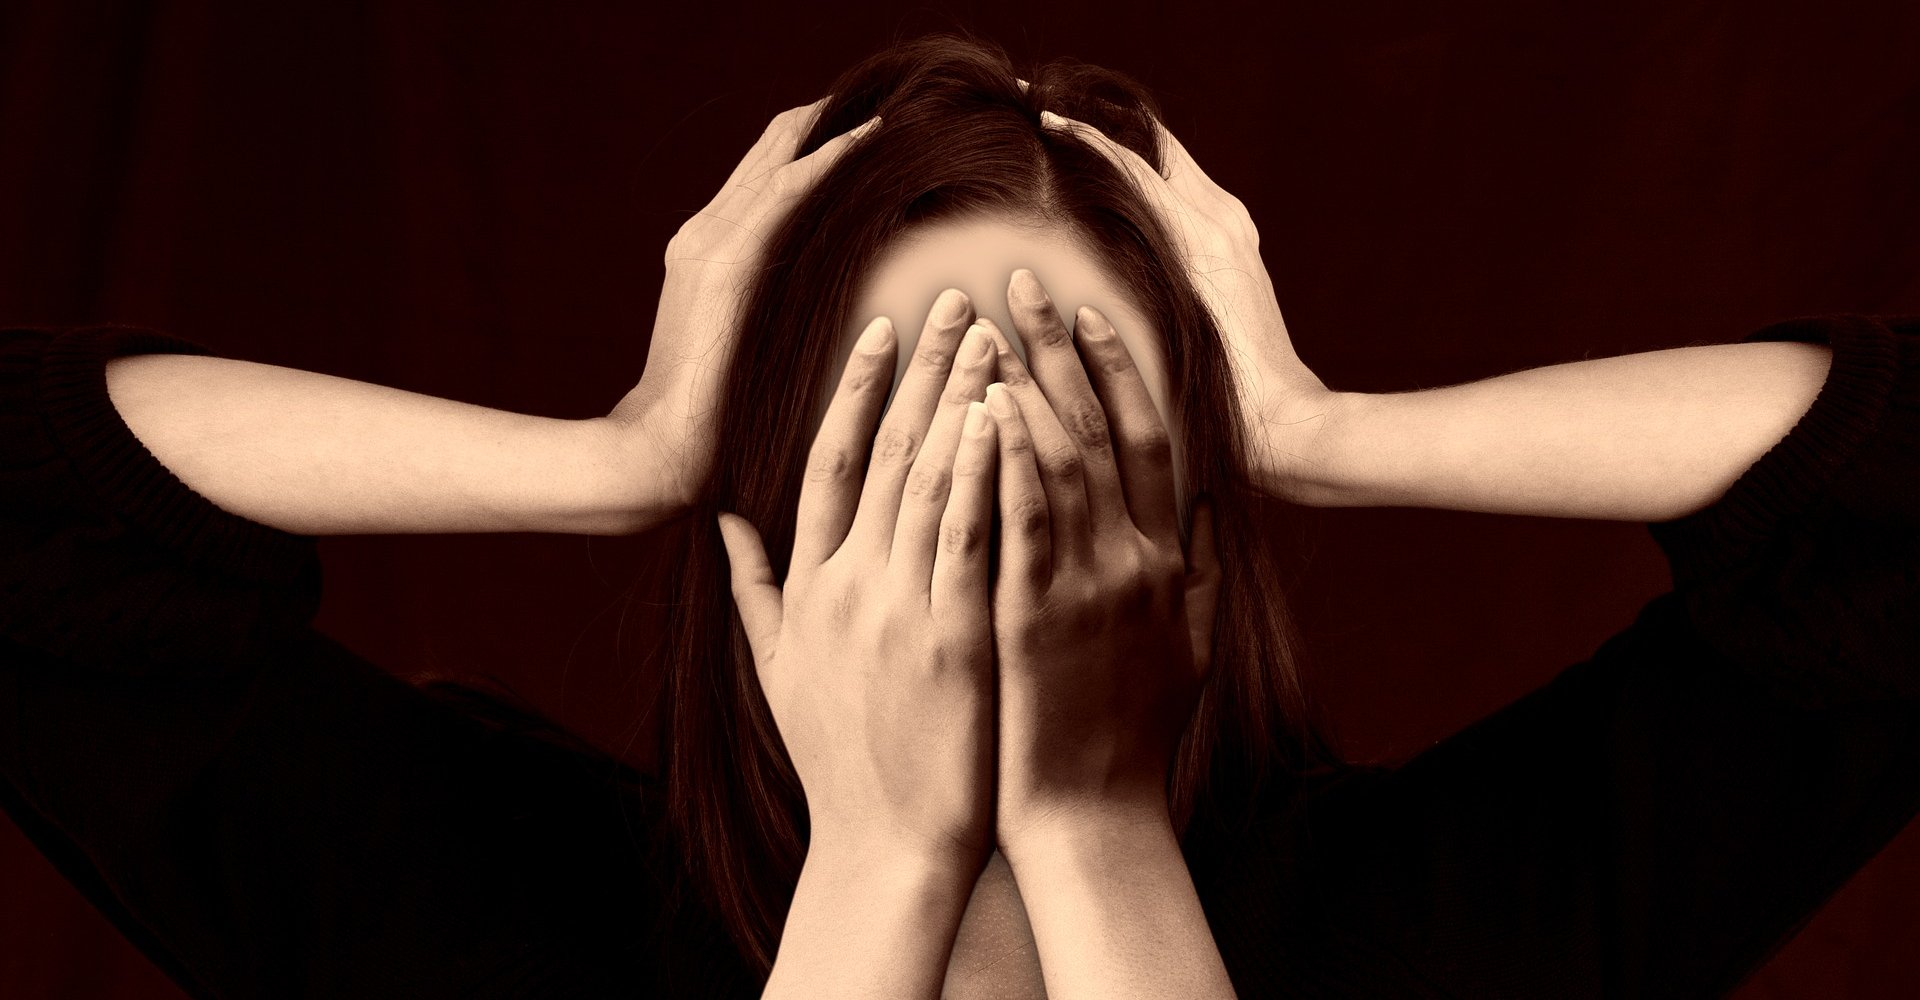 A woman covering her head in shame with two extra hands edited in covering her face, also in shame.